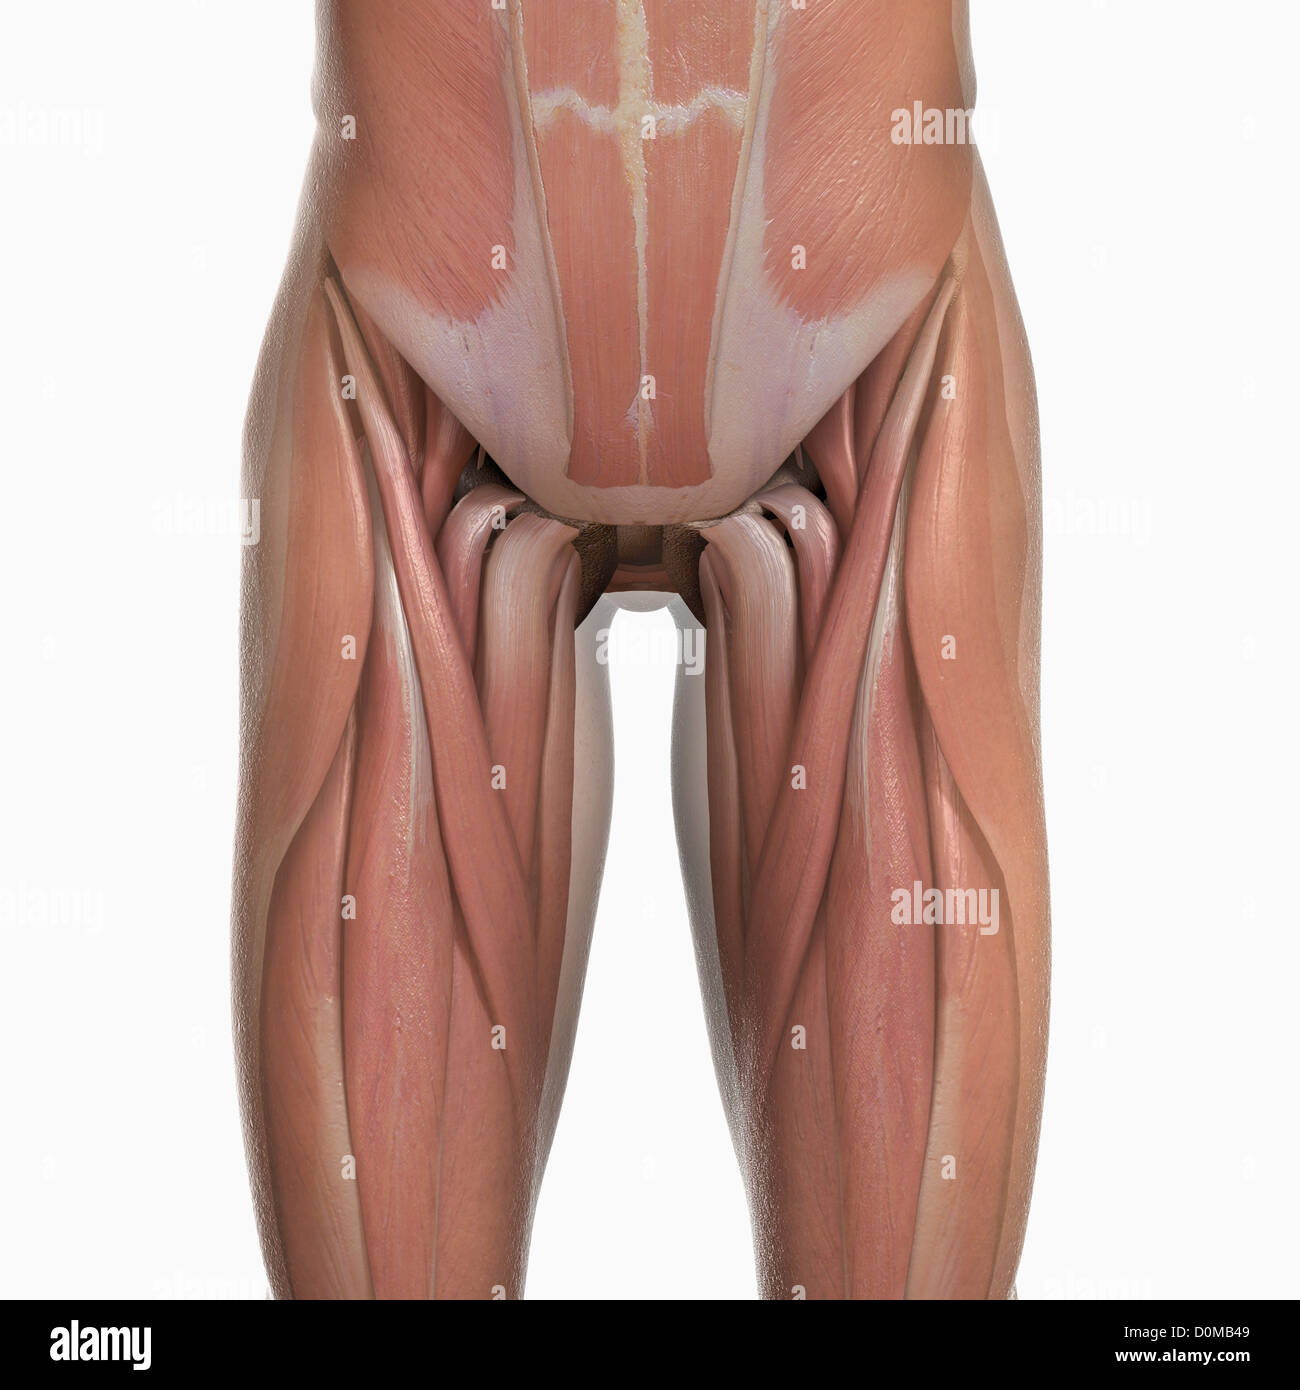 Pelvis Muscles Stock Photos Pelvis Muscles Stock Images Alamy